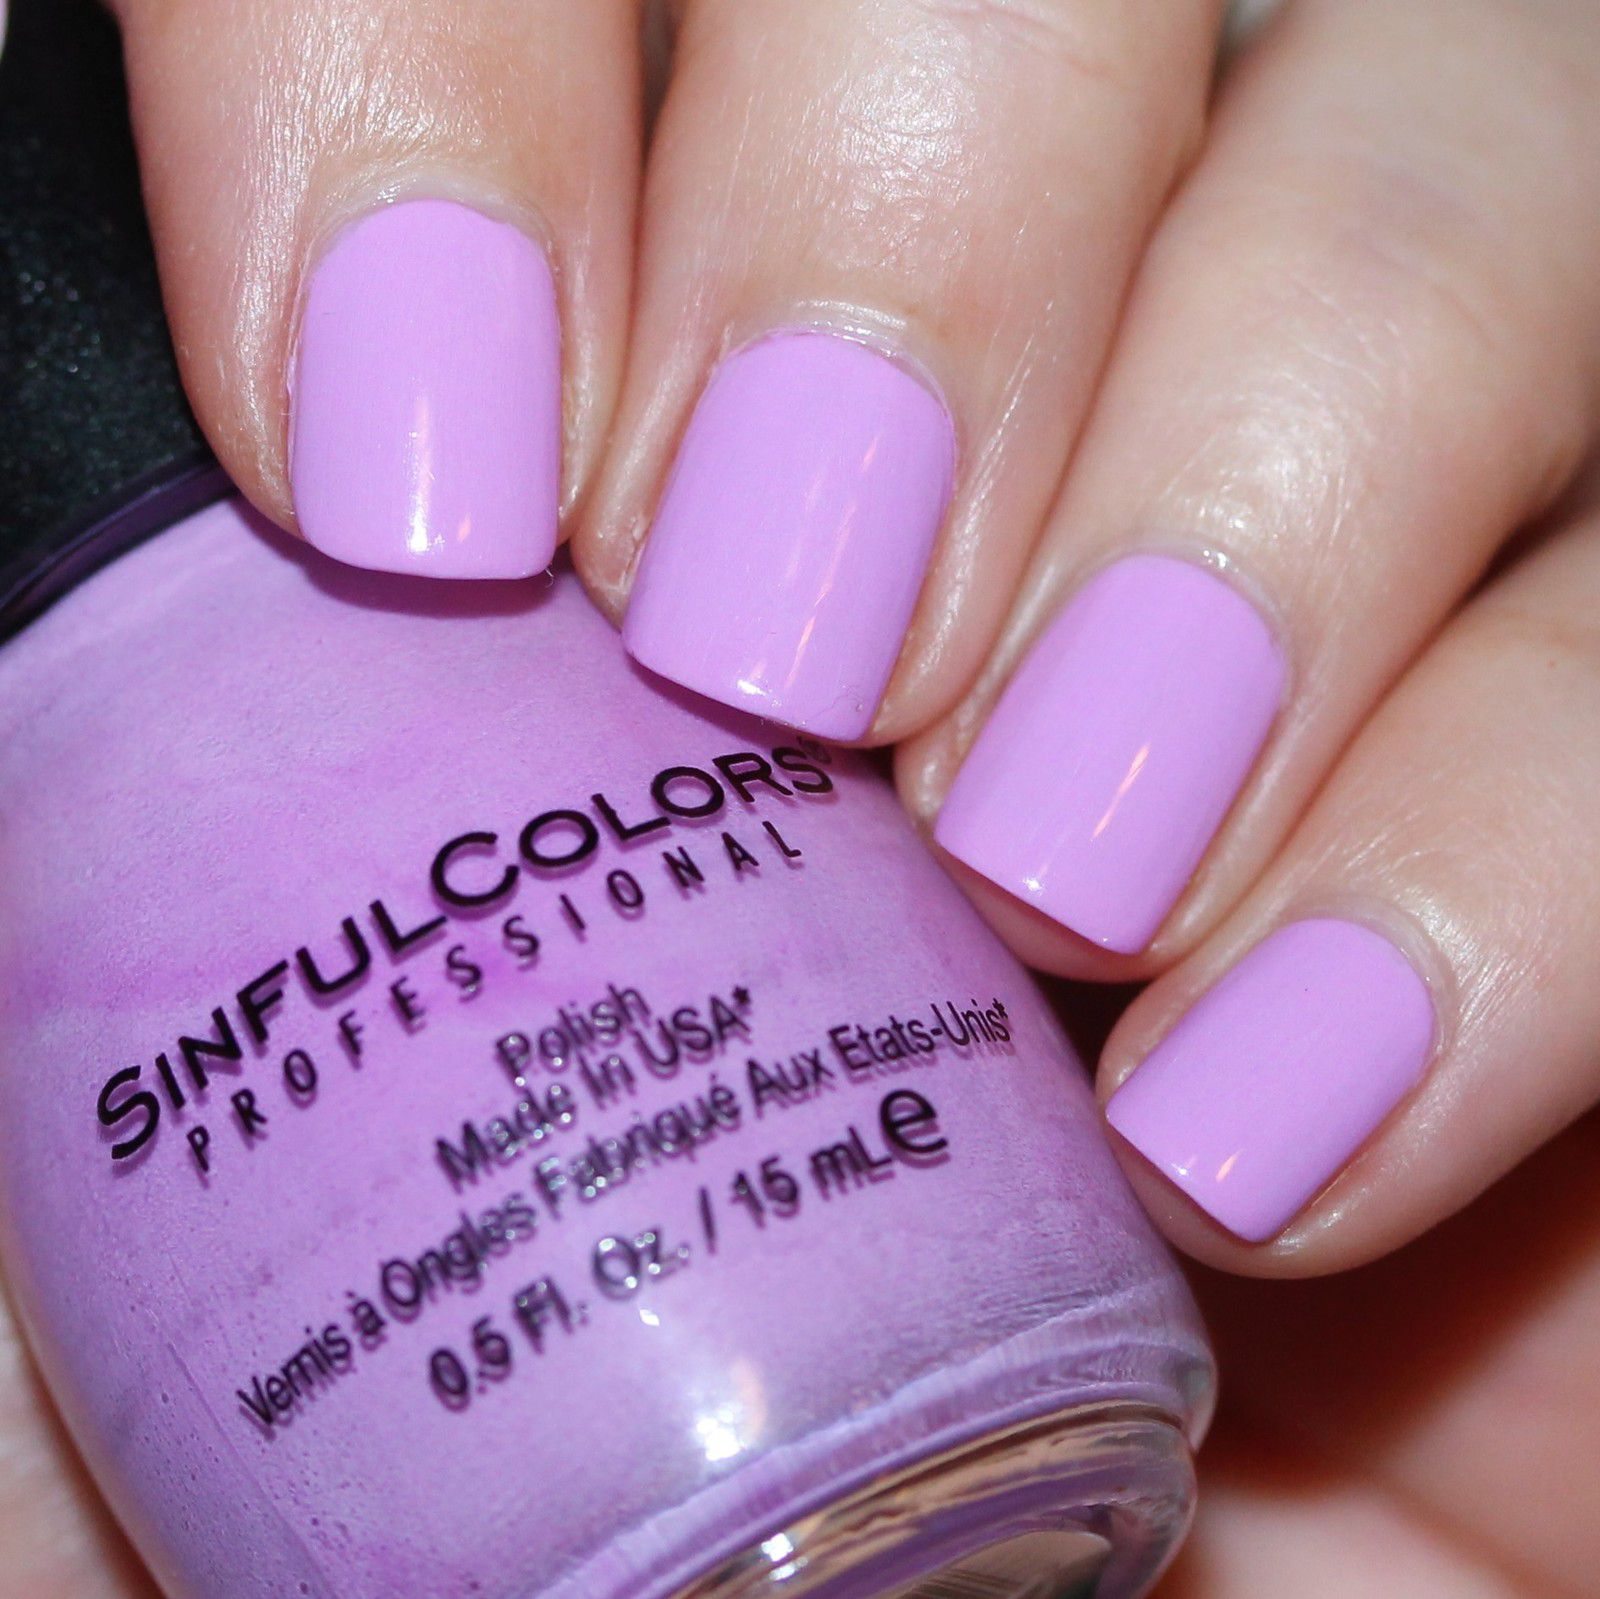 Essie Protein Base Coat / Sinful Colors Lilac Out Loud / HK Girl Top Coat